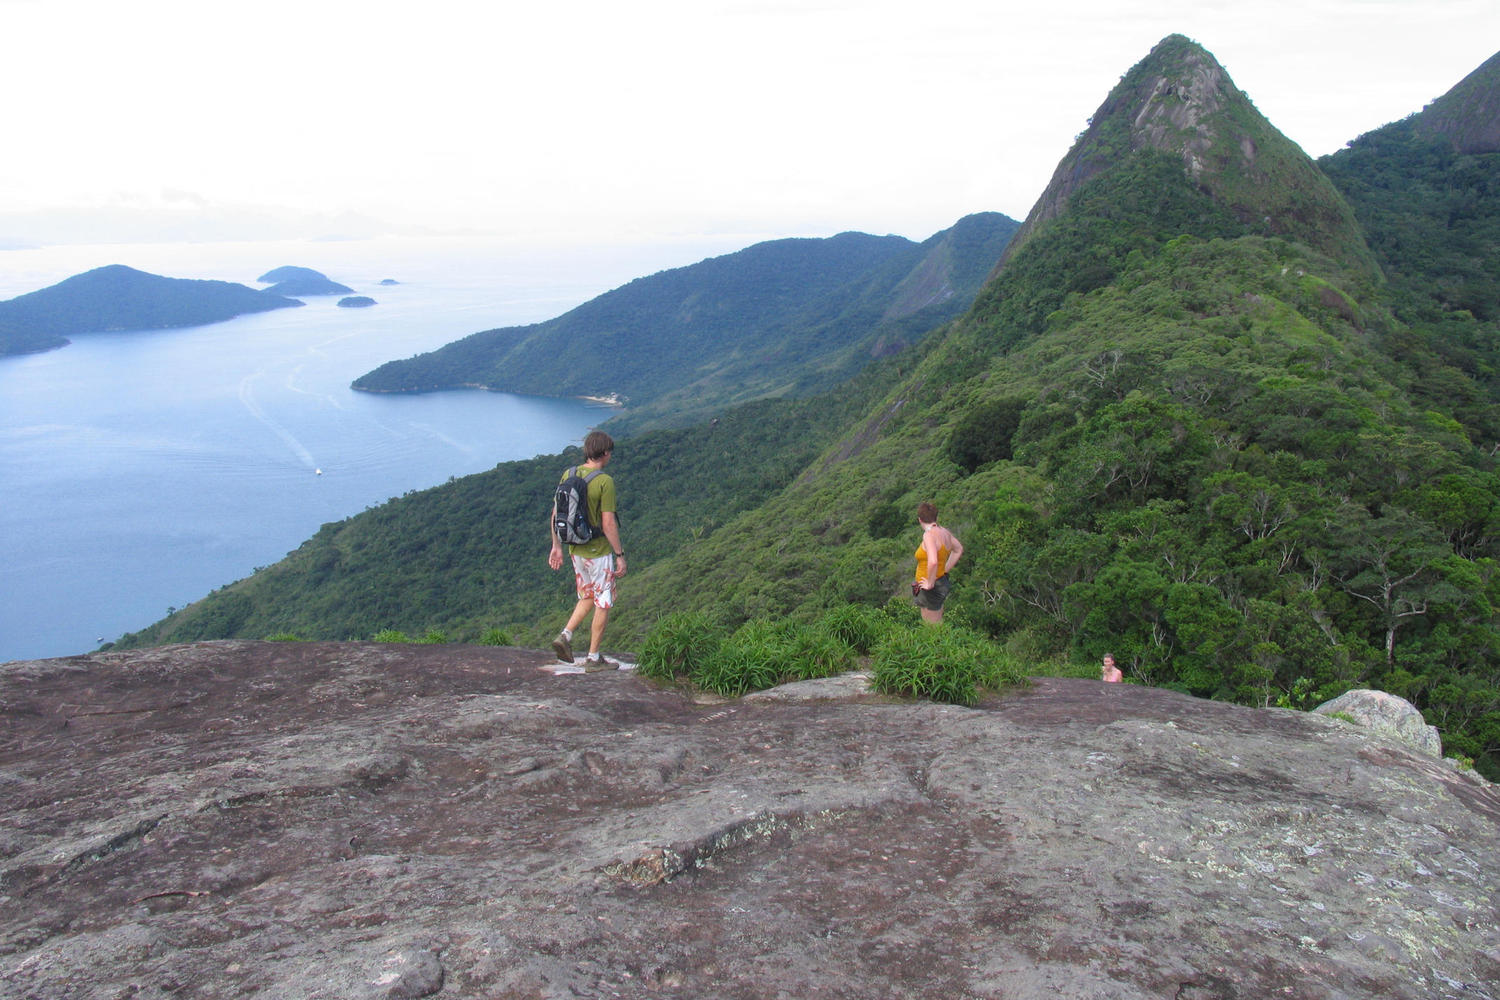 Hike to the top of the hills for great views of Paraty Bay